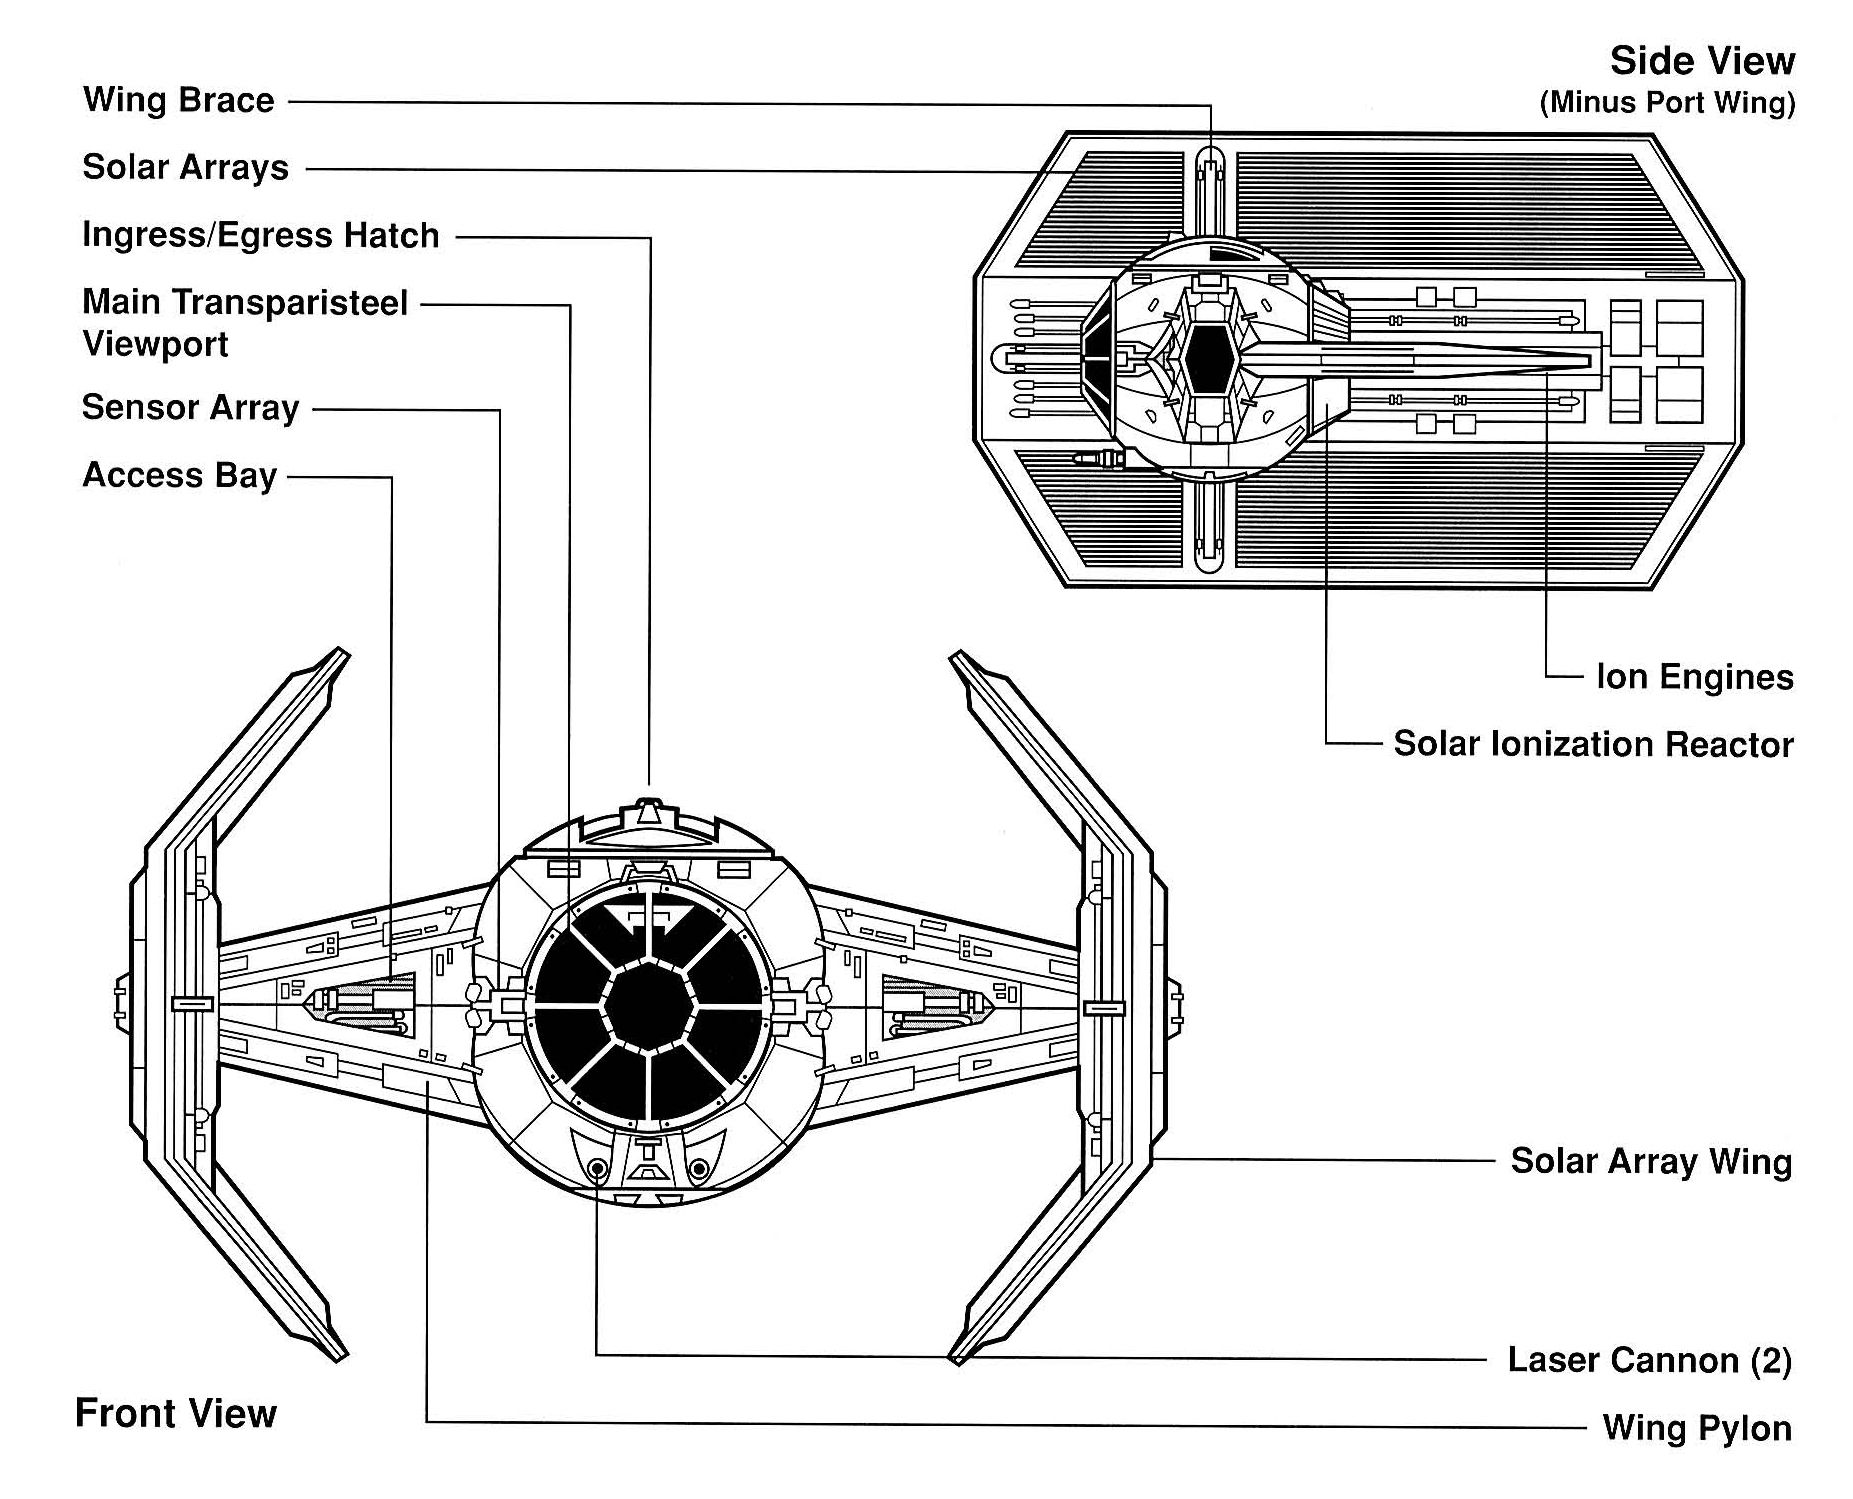 A Wing Fighter Schematics - Tools • X Wing Schematics on minecraft schematics, halo warthog schematics, a wing fighter schematics, y-wing schematics, b-wing schematics, slave 1 schematics, tie interceptor schematics, at-at schematics,